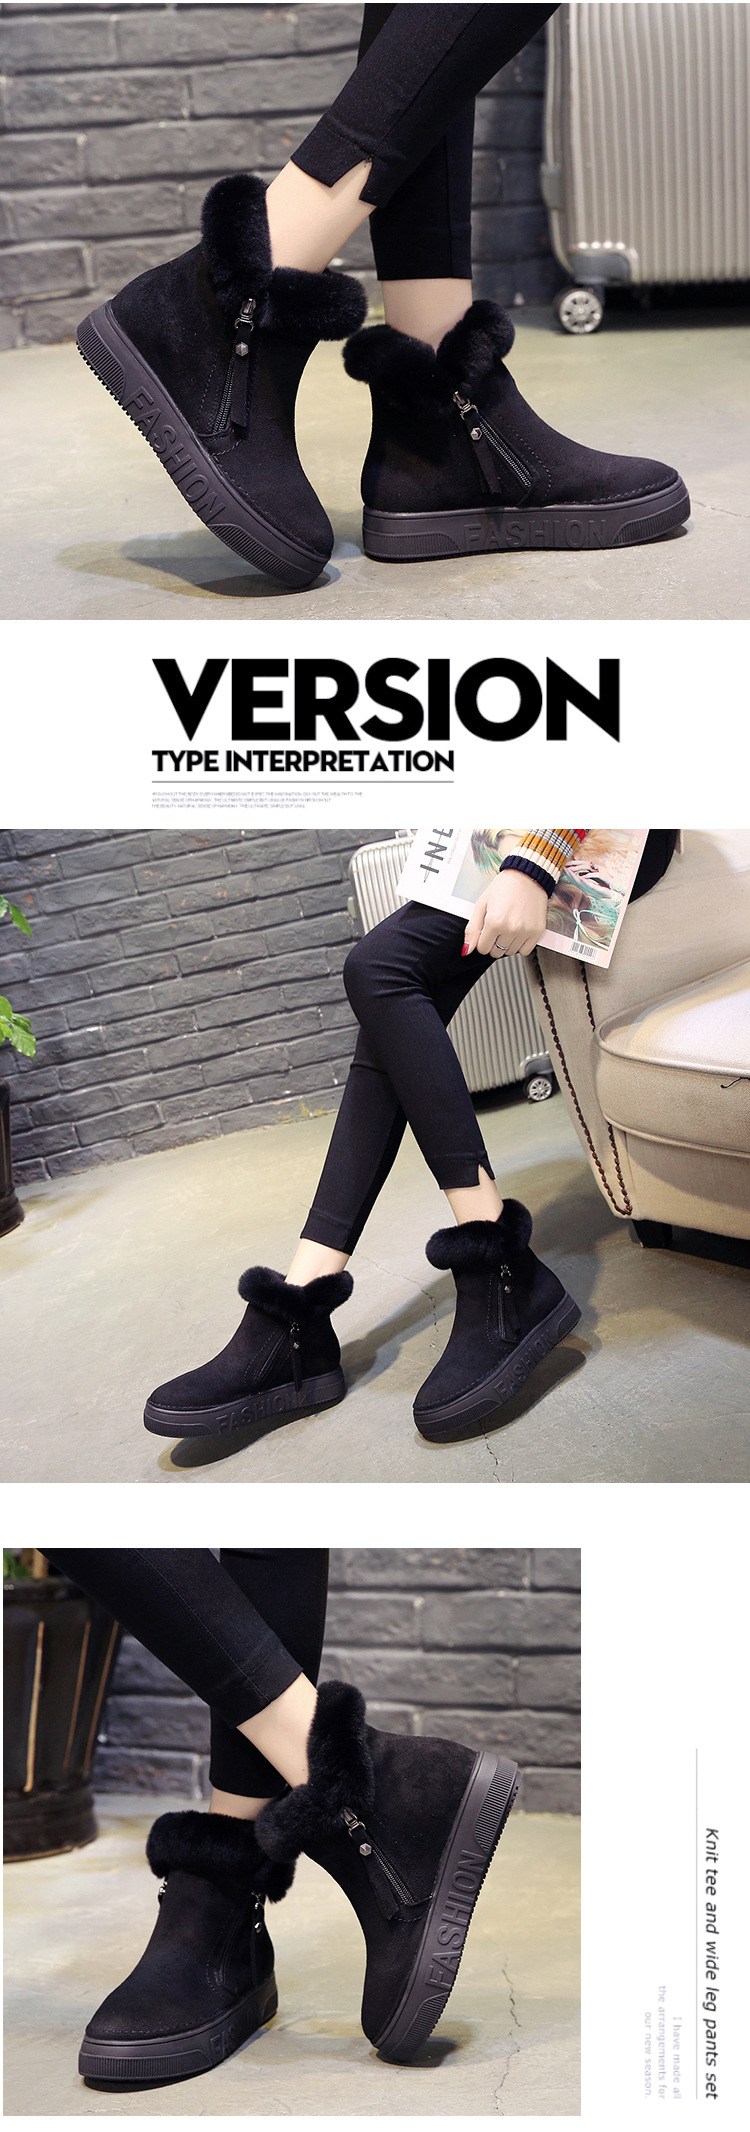 Women Short Ankle Boots Winter Plush Warm Thick Bottom Platform Round Toe Students Leisure Flat Ankle Snow Boots Botas Mujer 50